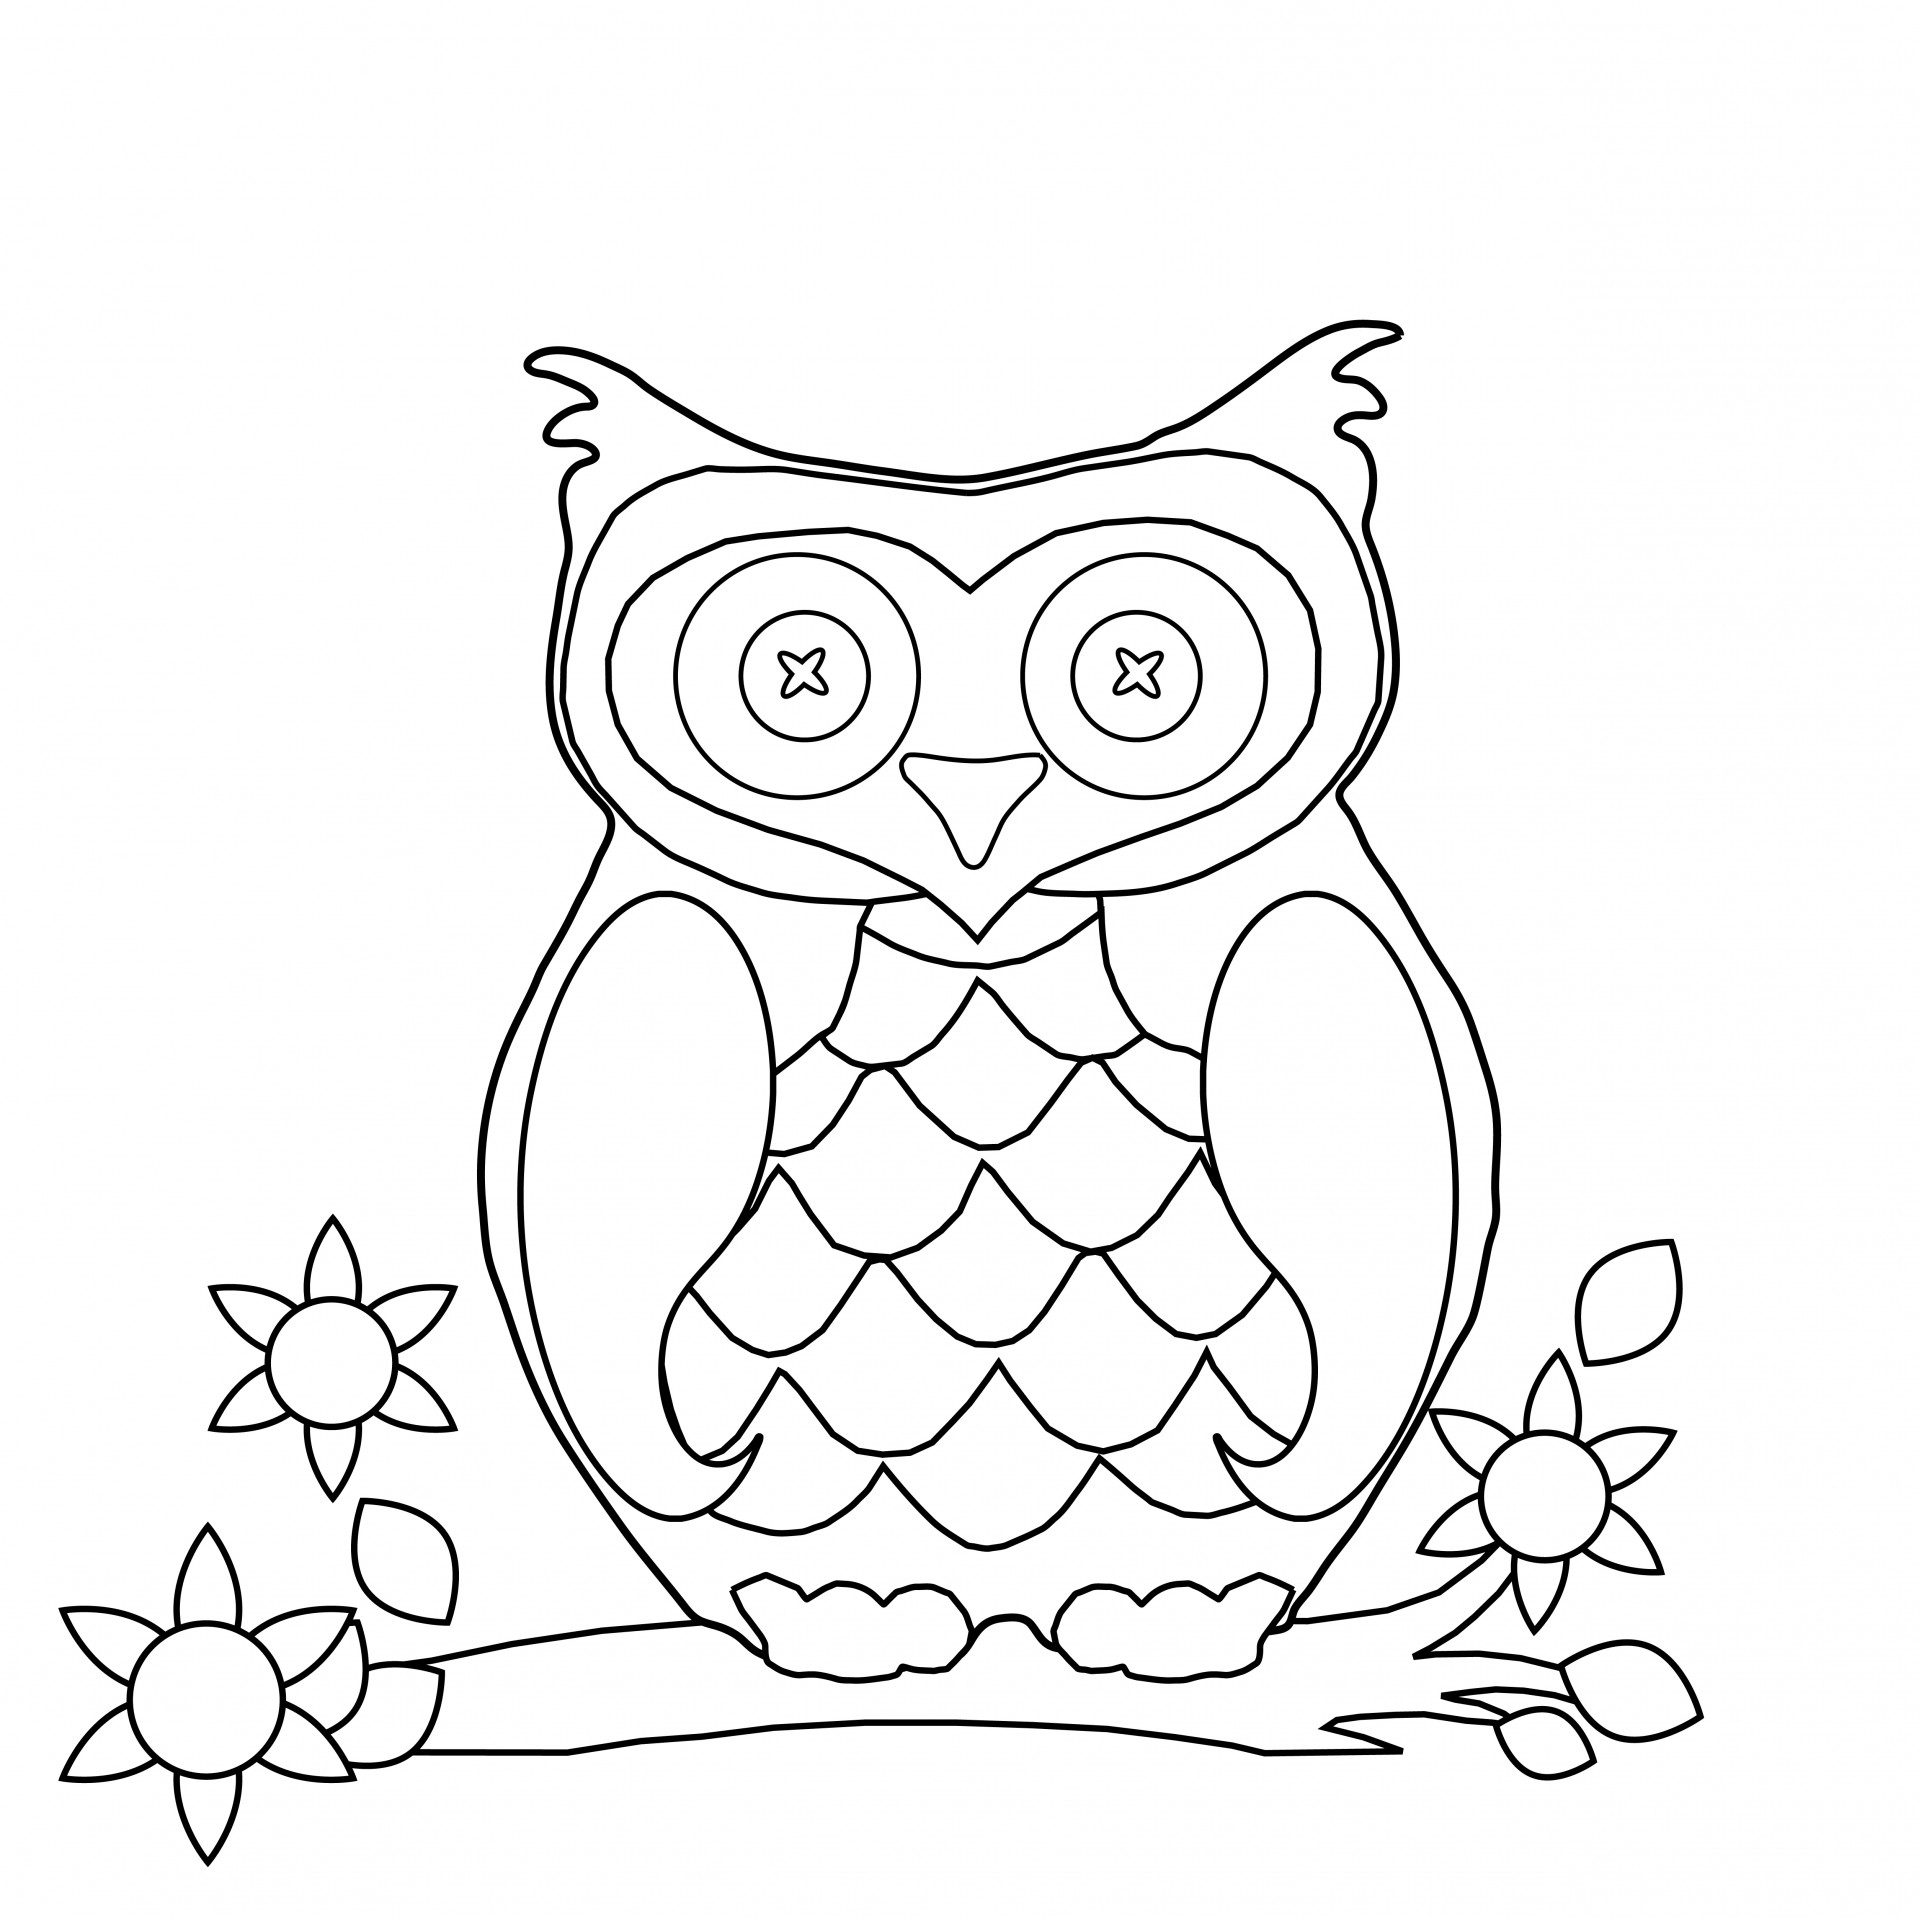 printable colouring pages free printable abstract coloring pages for adults pages colouring printable